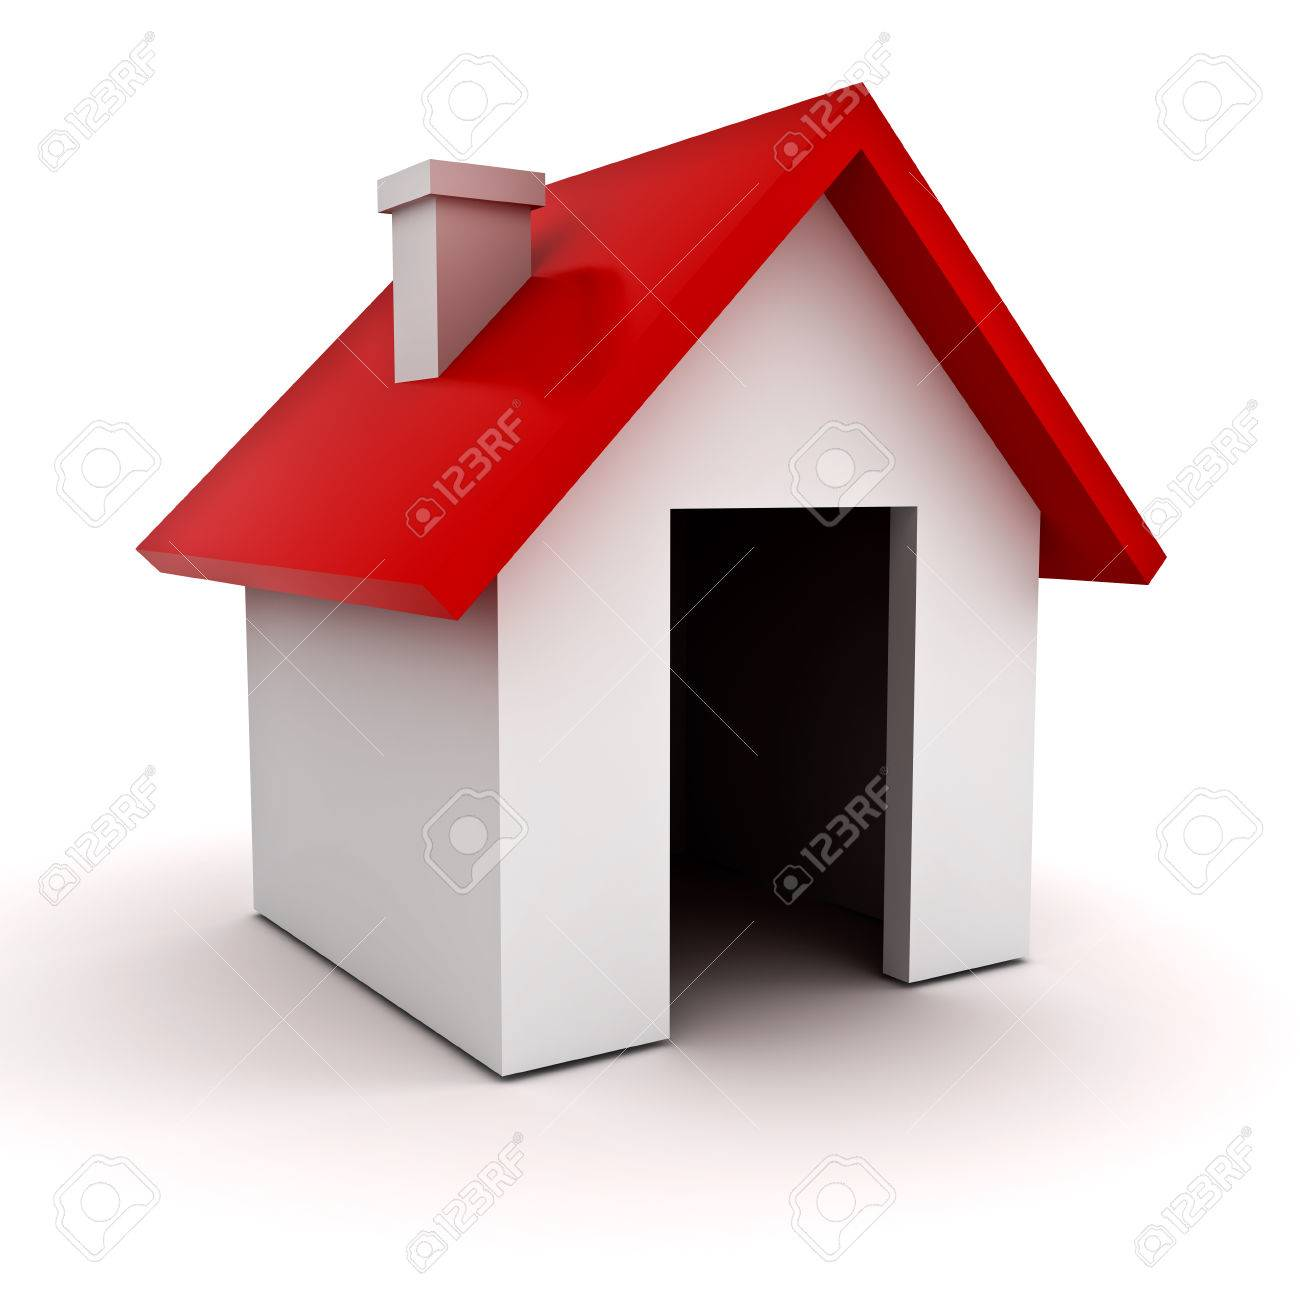 3d Simple House Model Over White Background